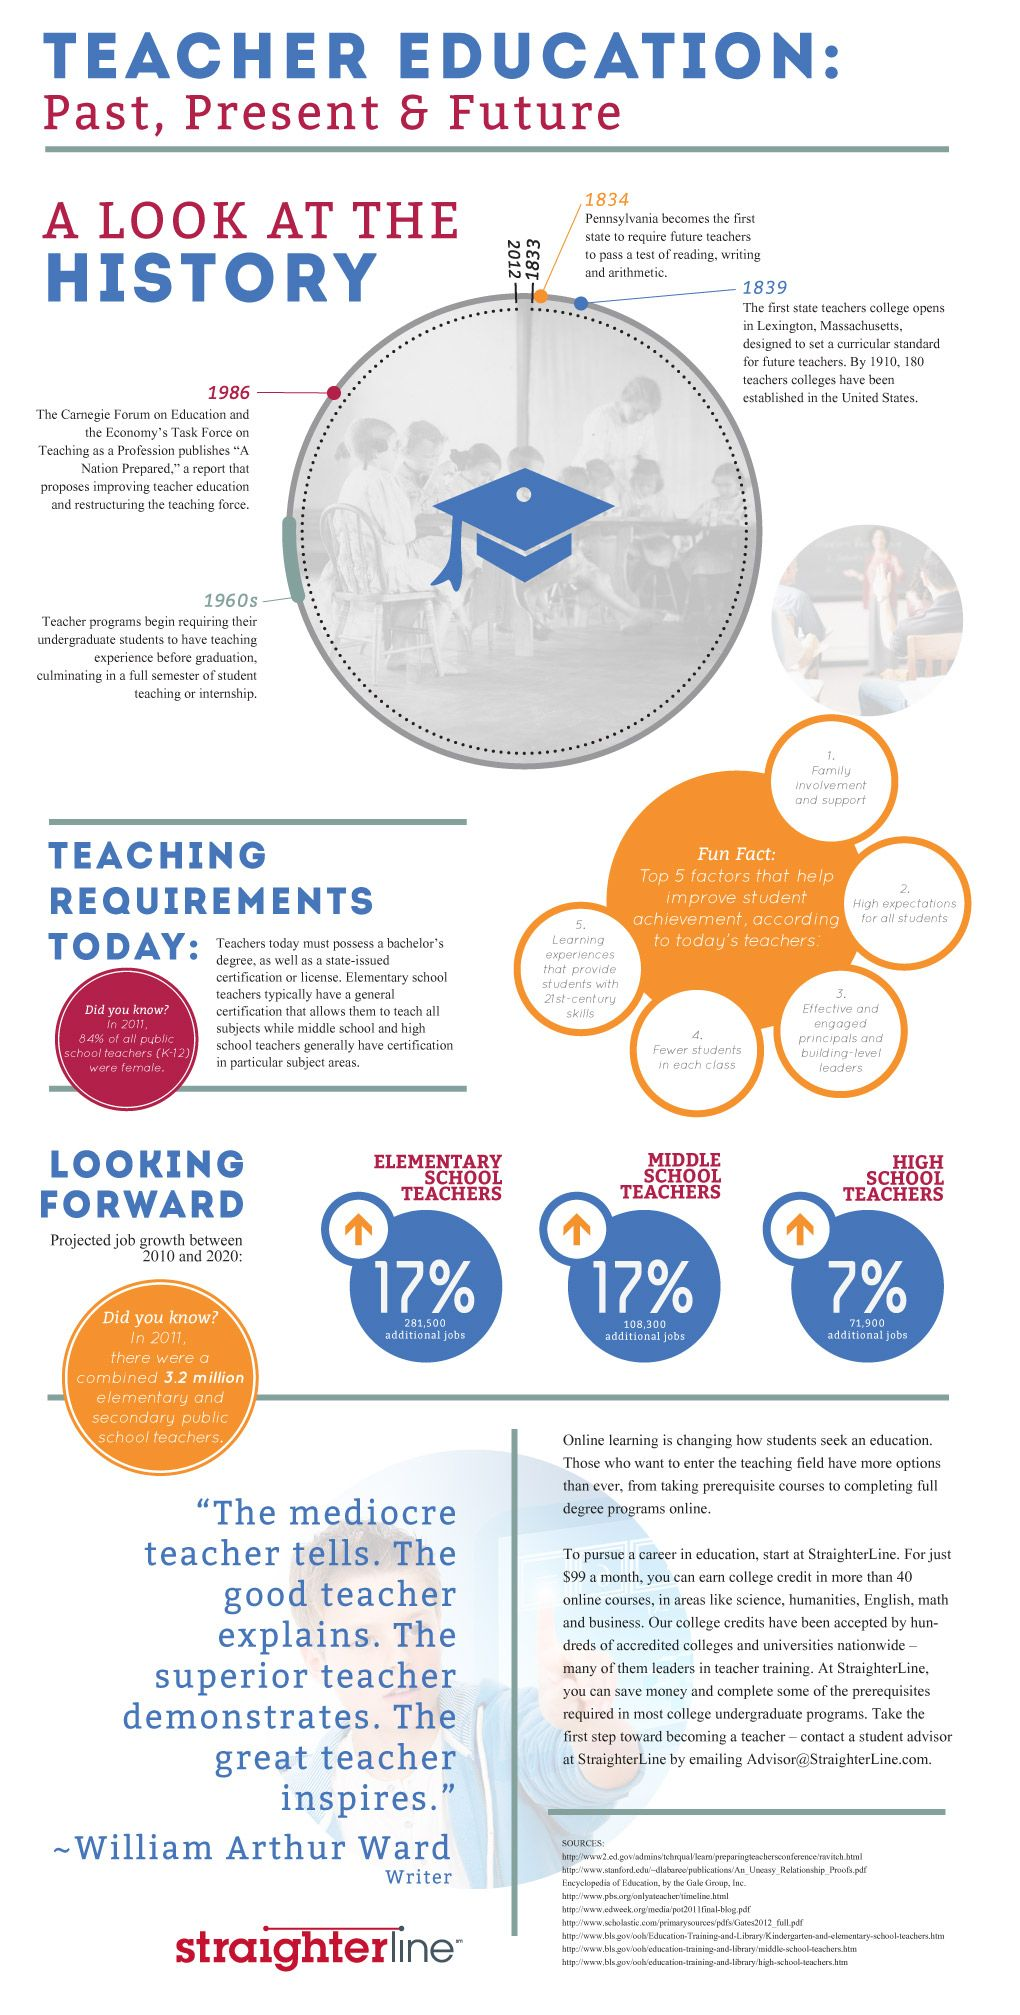 Teacher Education: Past, Present & Future